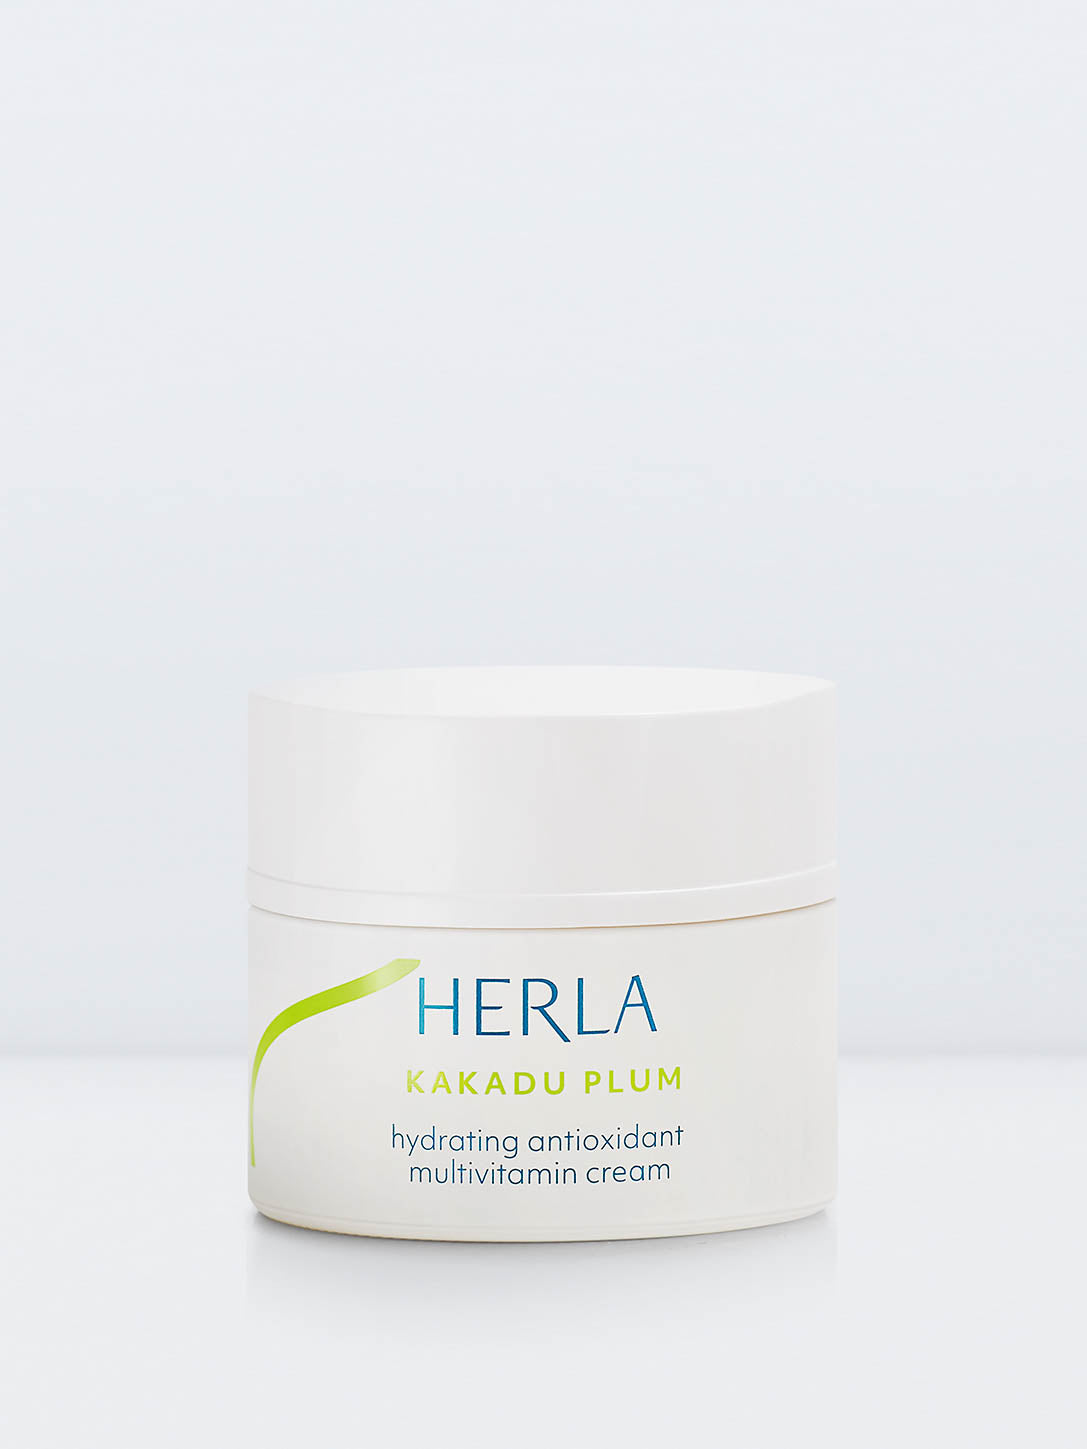 hydrating antioxidant multivitamin cream